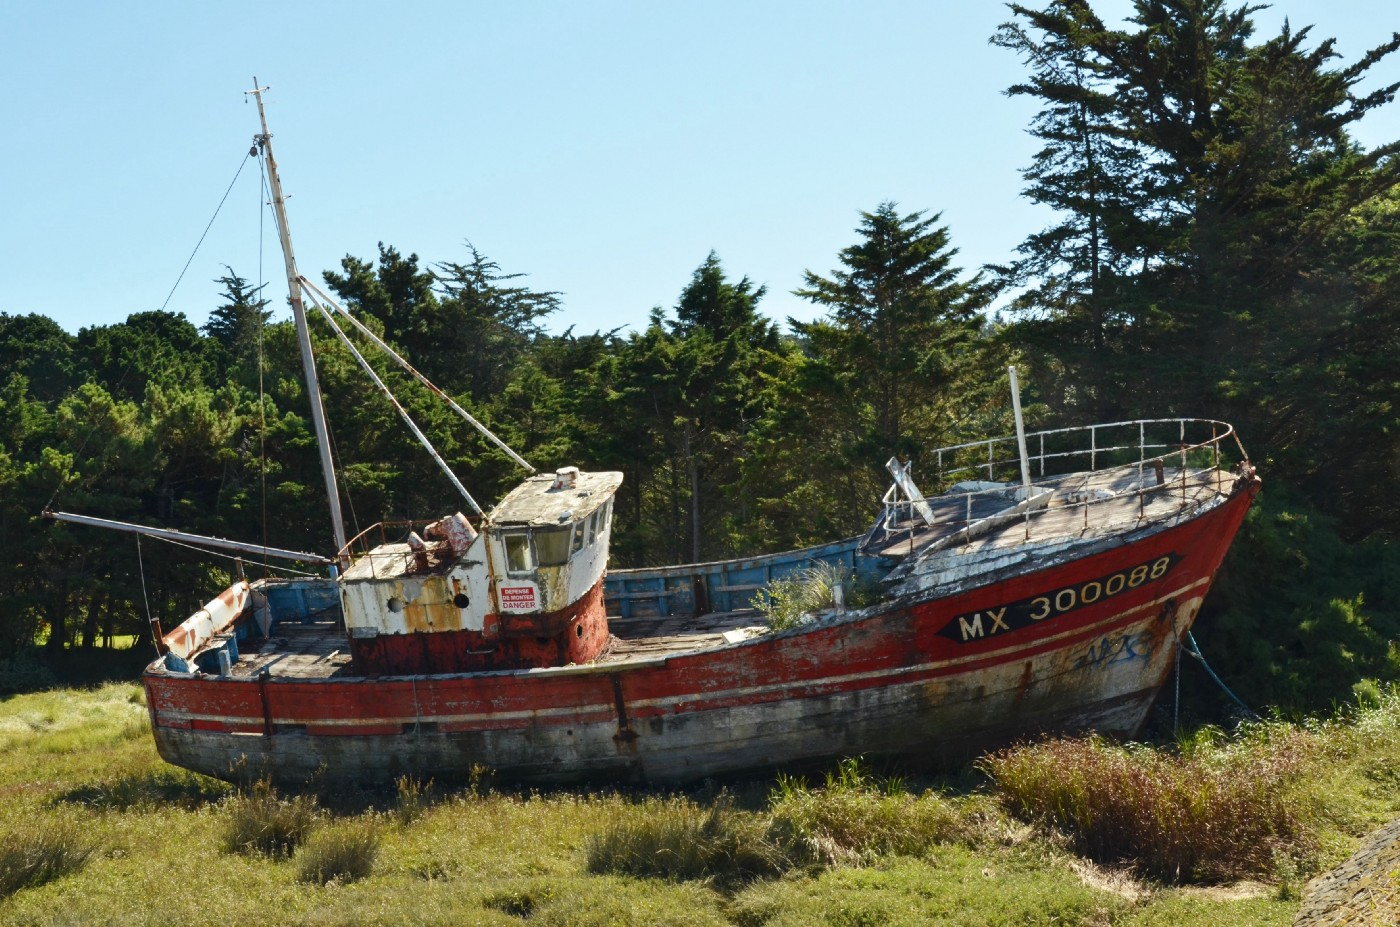 Old rusty ship on a dry land (on a grass field and some trees are behind). A neglected ship.